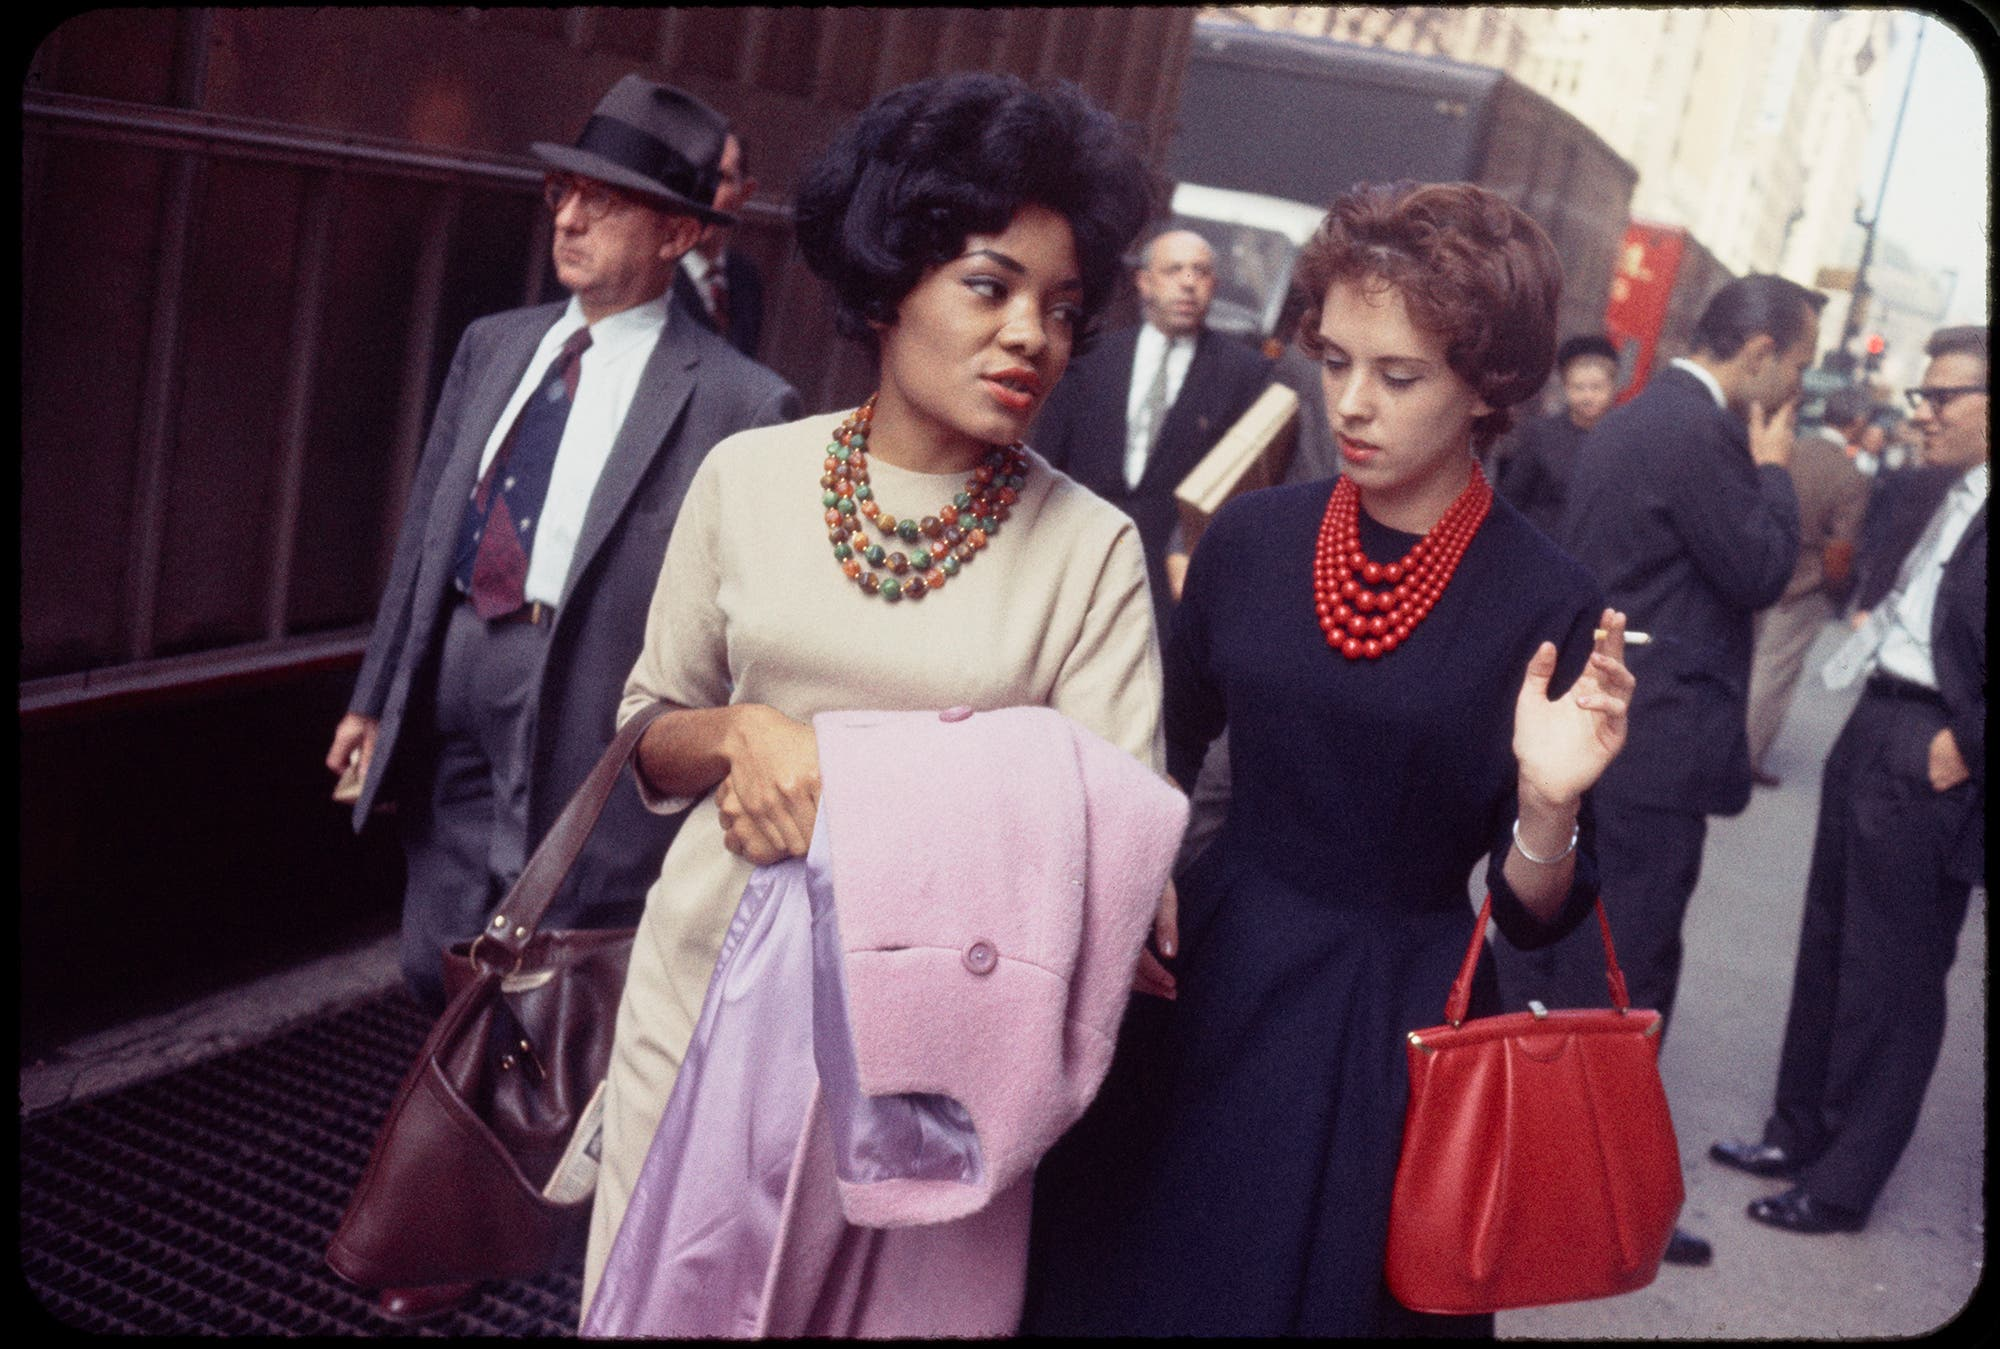 Garry Winogrand's Color Street Photo Exhibit is Enthralling and Confusing